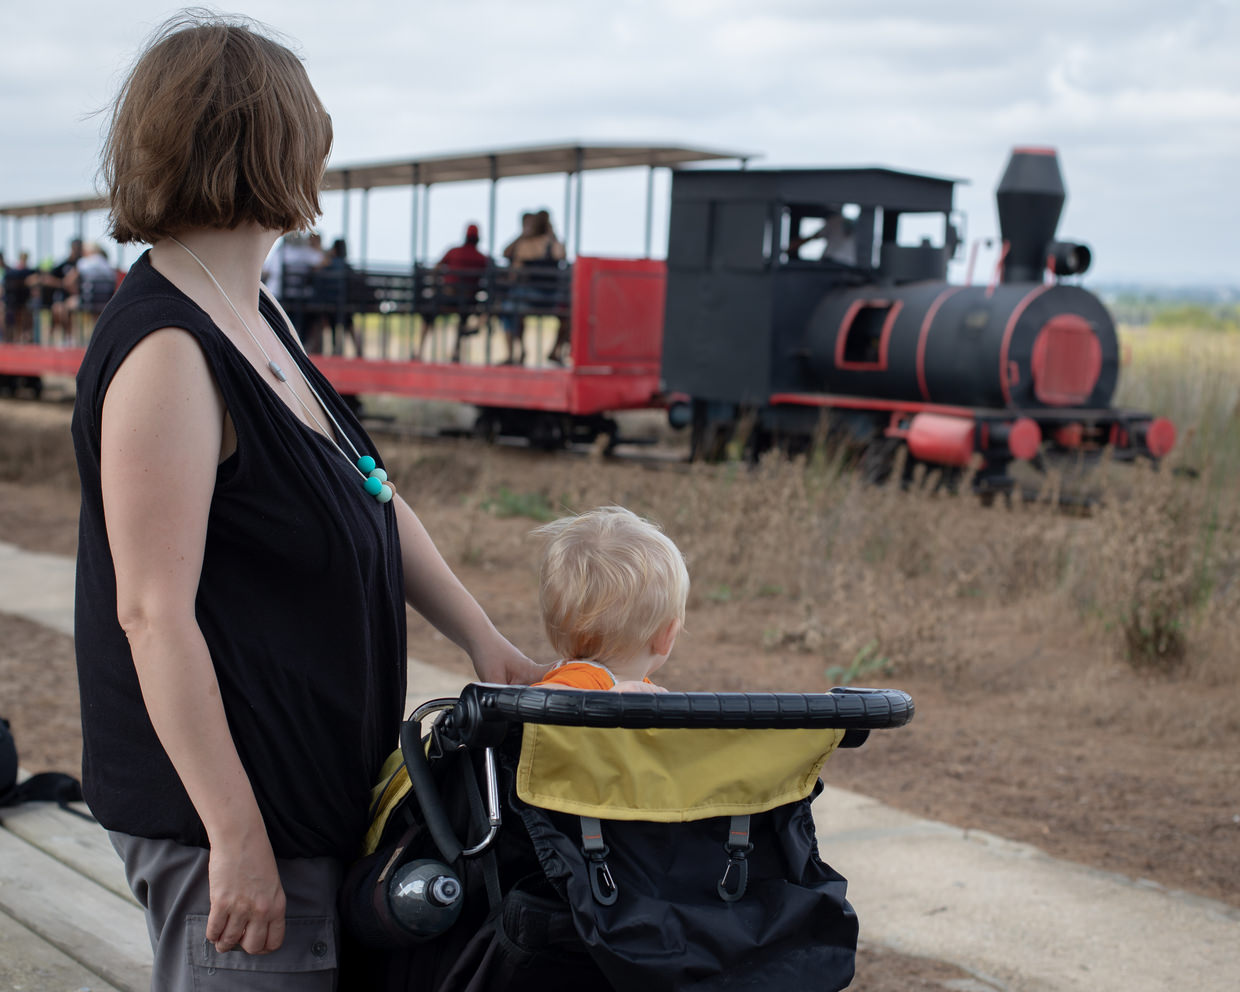 Samantha and Conway watching the small diesel train